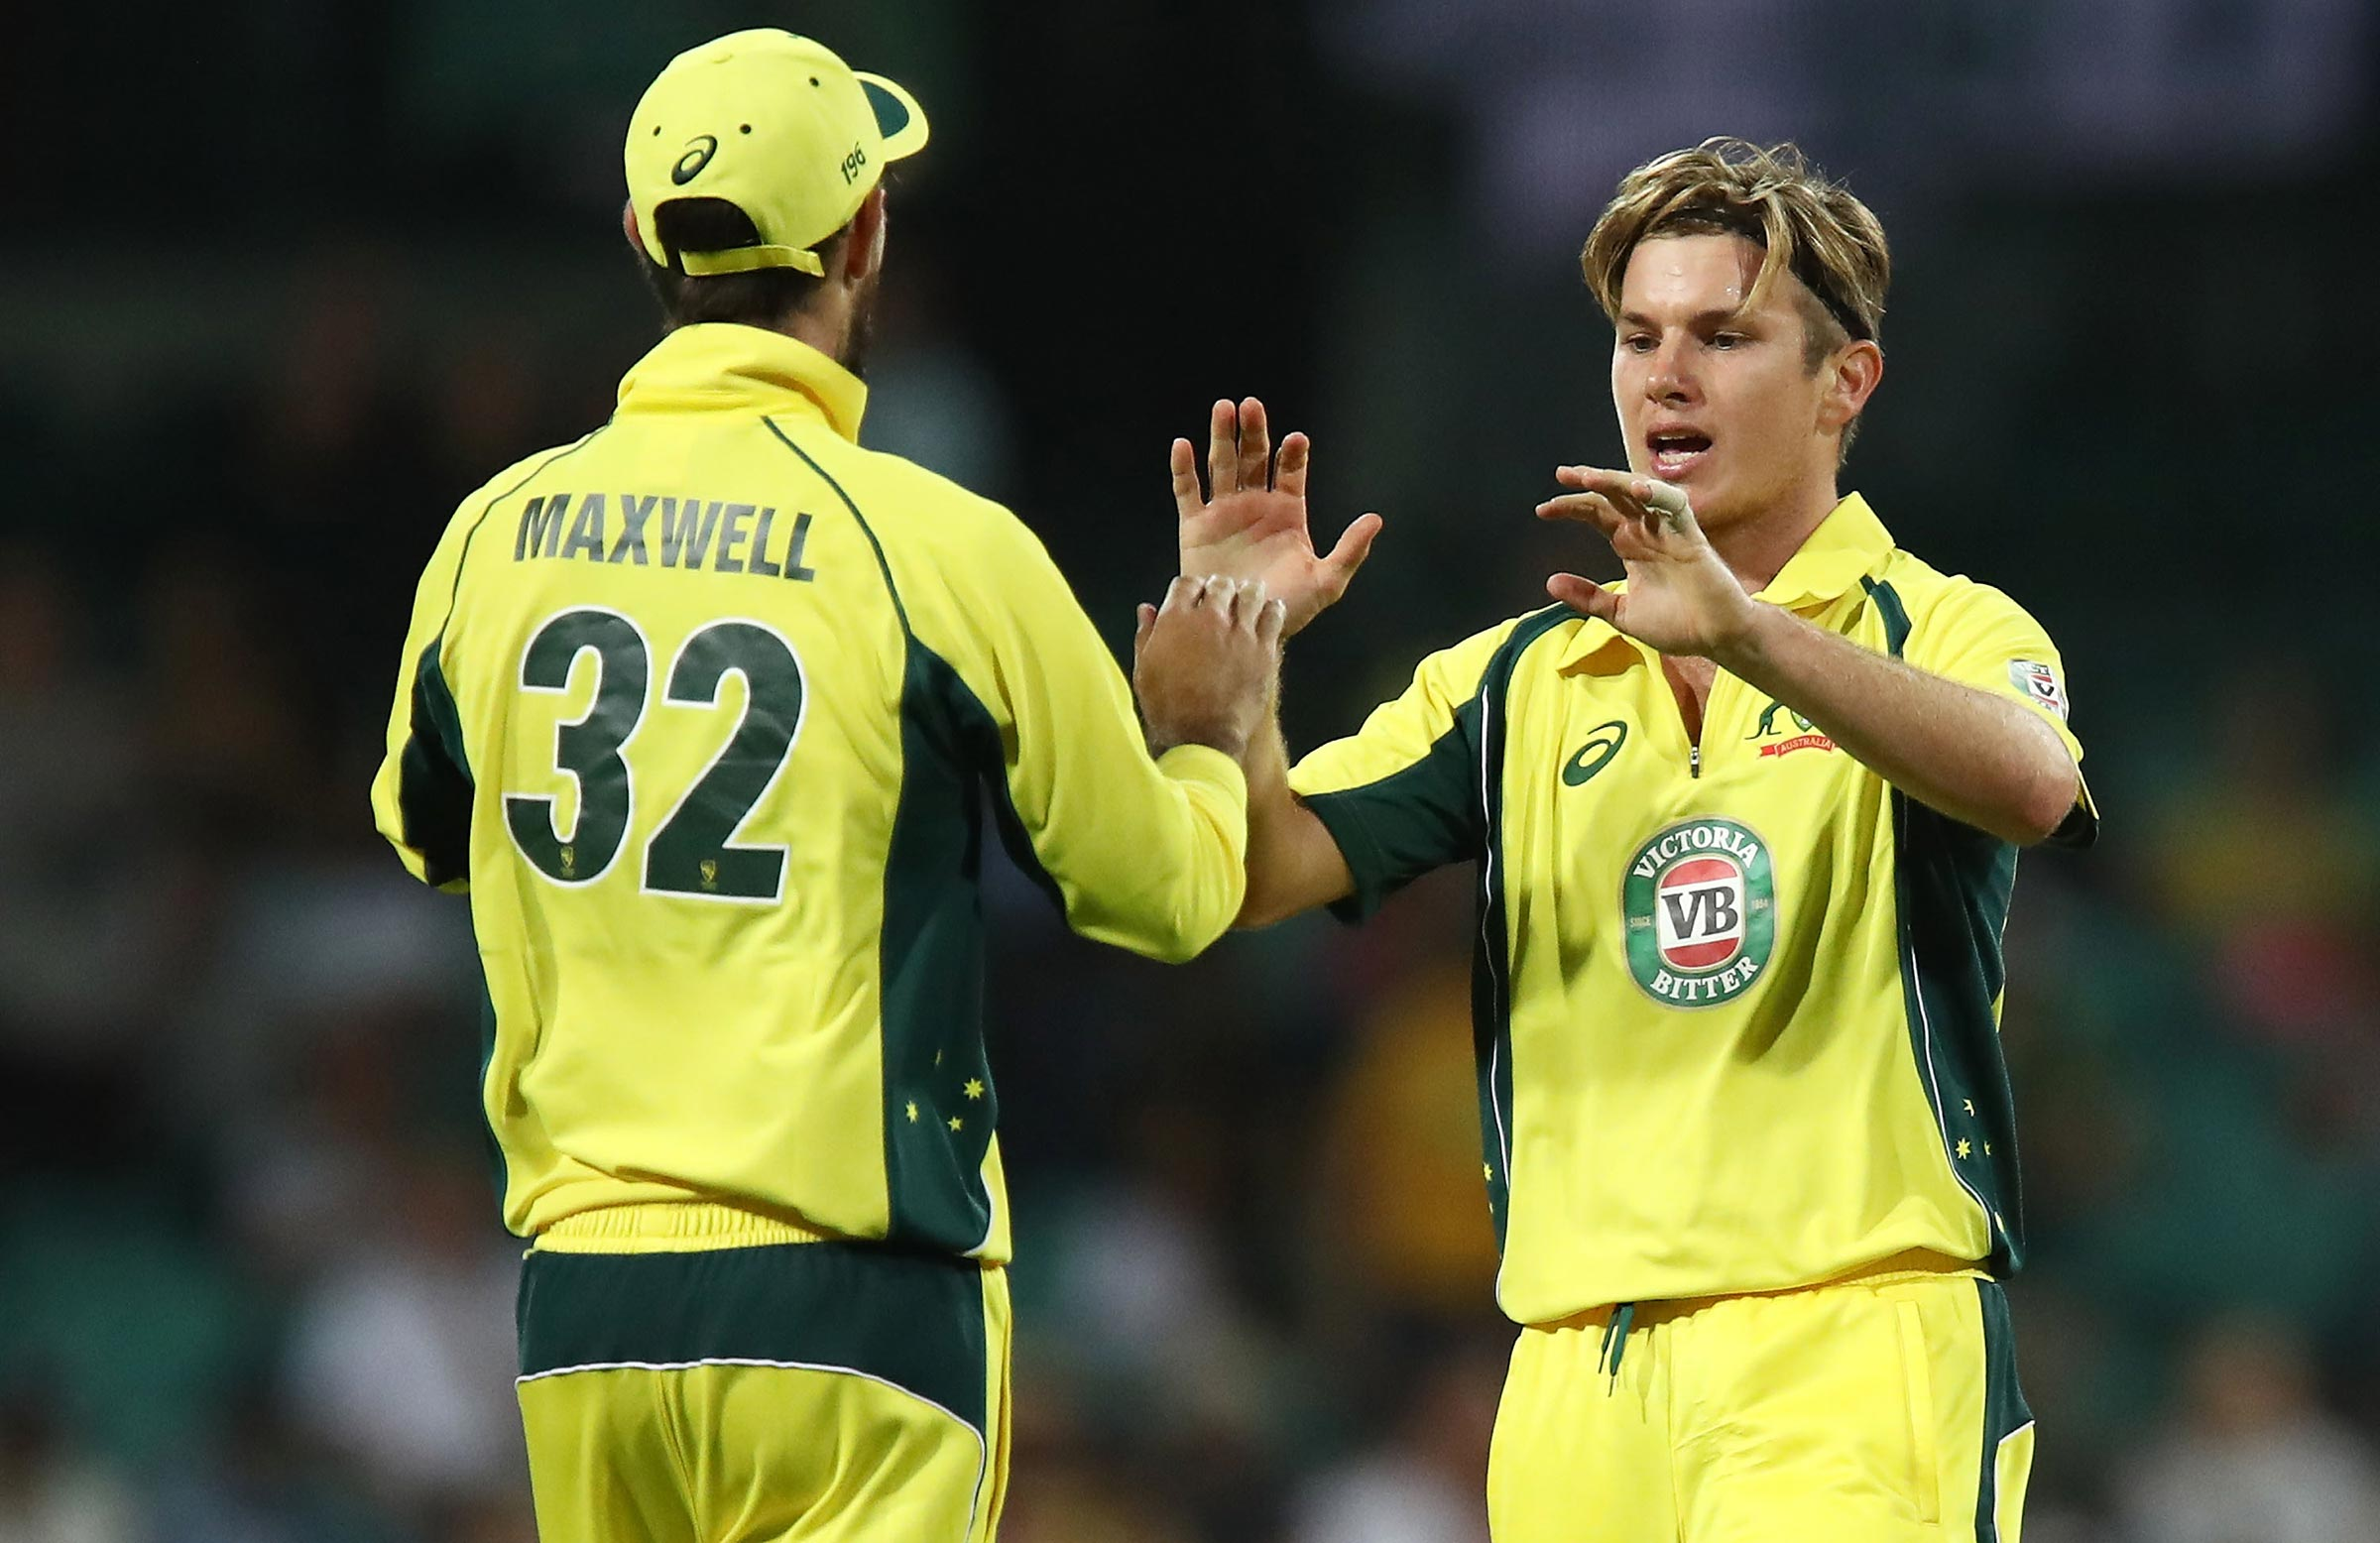 3rd ODI: Australia beat New Zealand by 117 runs